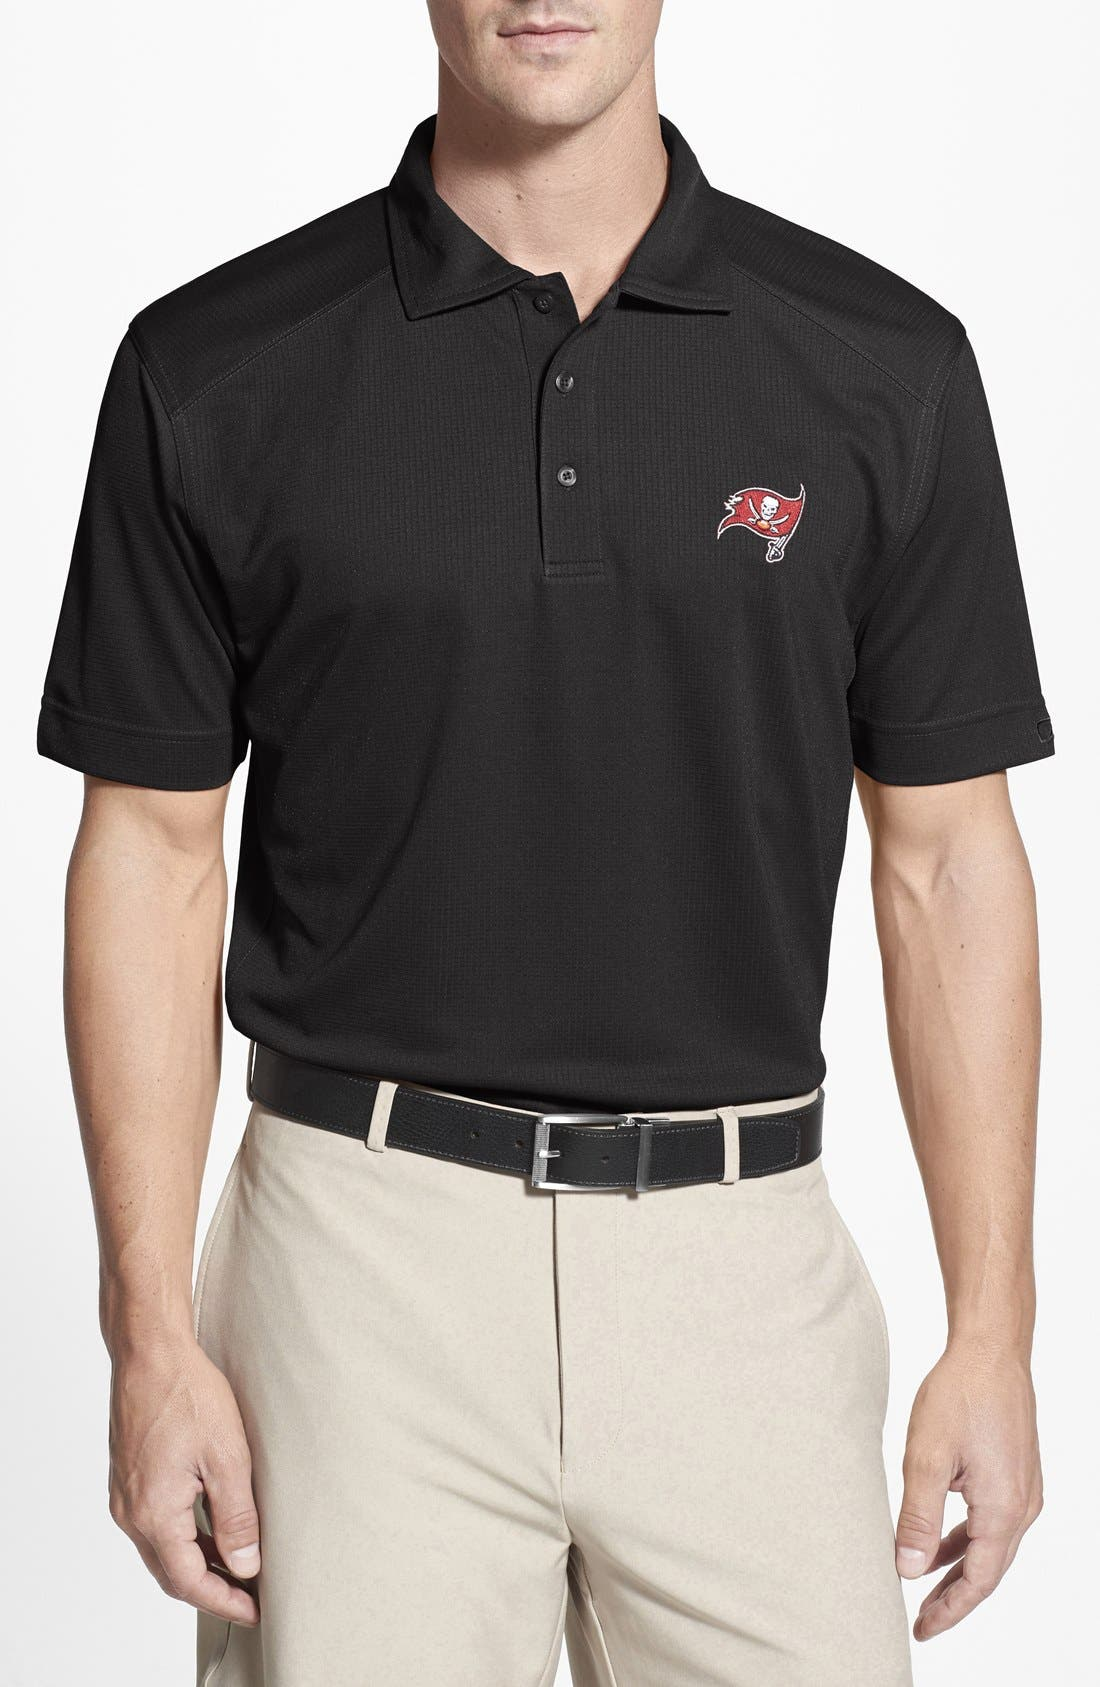 Tampa Bay Buccaneers - Genre DryTec Moisture Wicking Polo,                             Main thumbnail 1, color,                             001